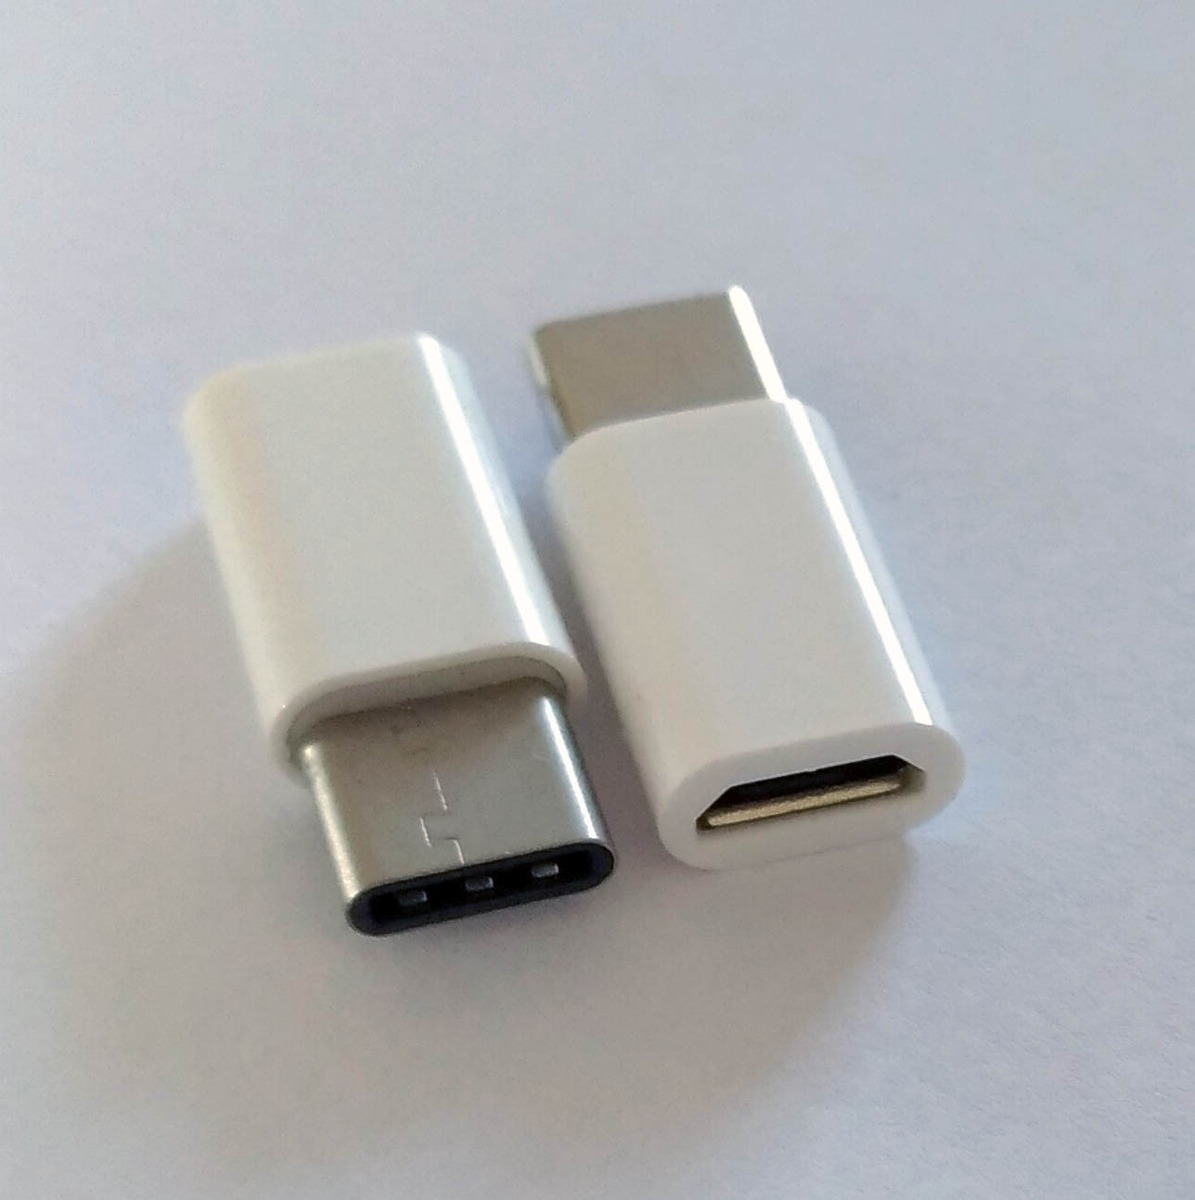 Adaptador type c macho para micro usb femea galaxy s8 s8 for Adaptador micro usb a usb c